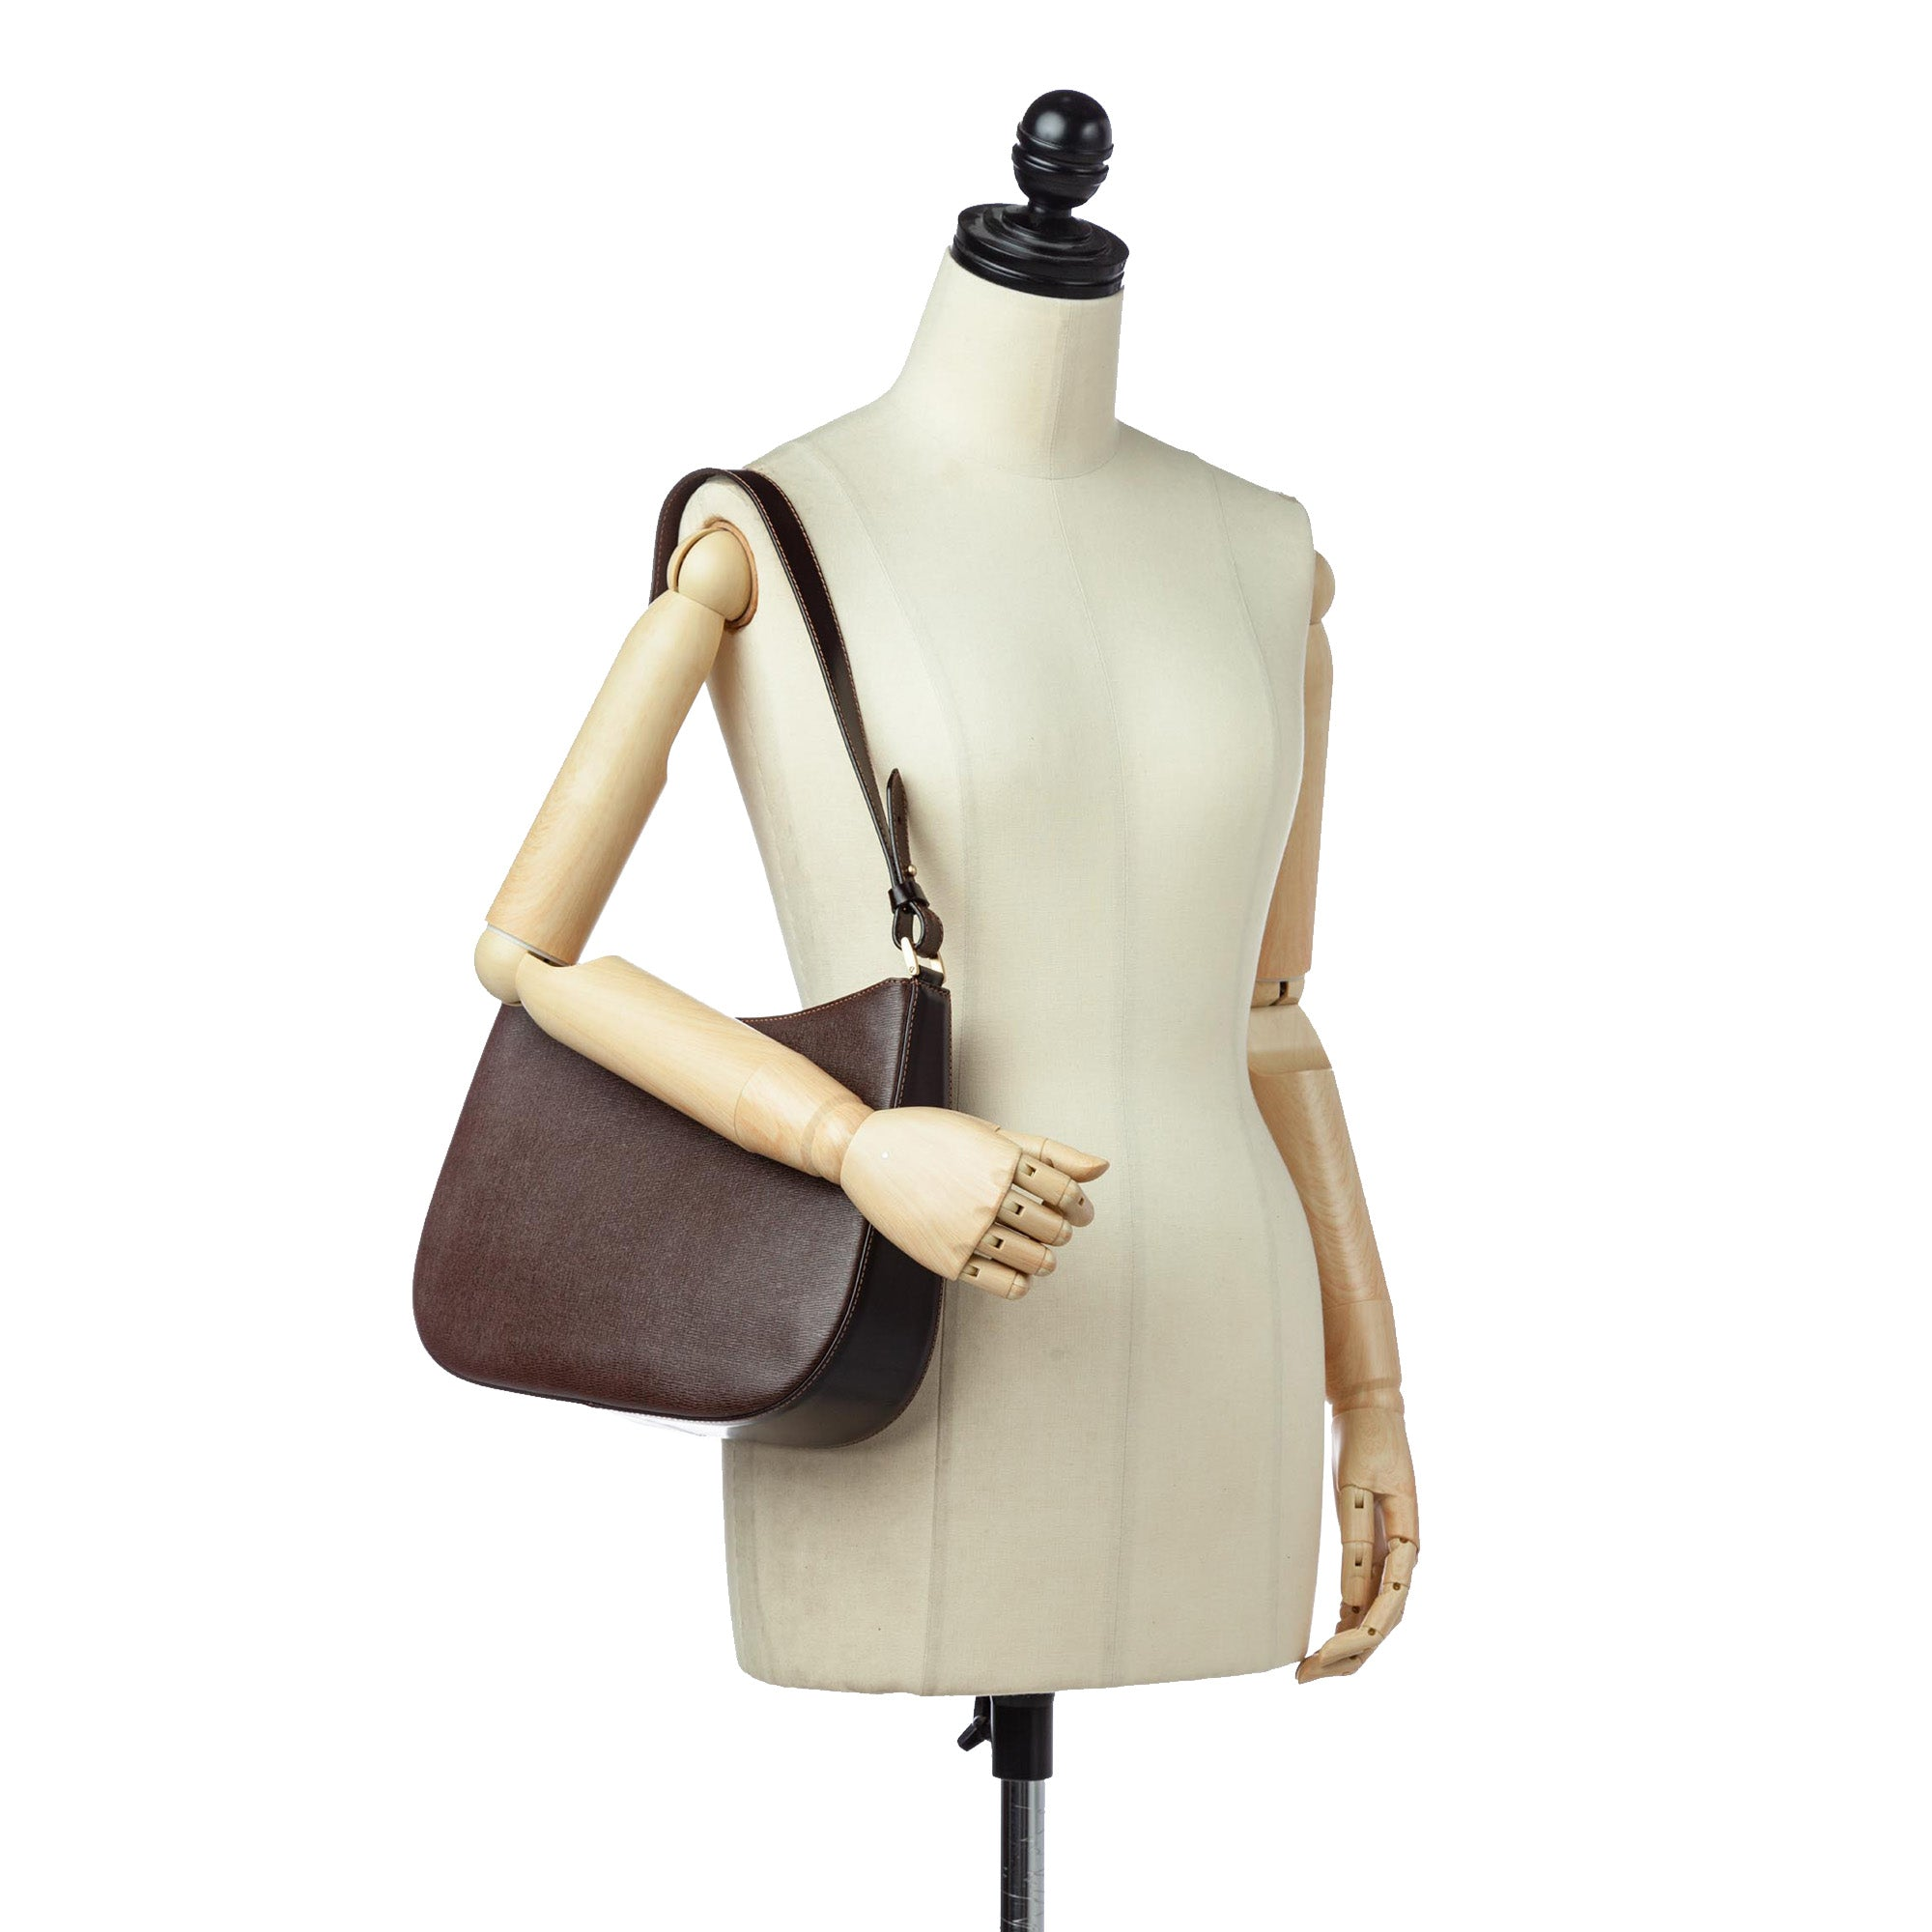 Burberry Brown Leather Shoulder Bag